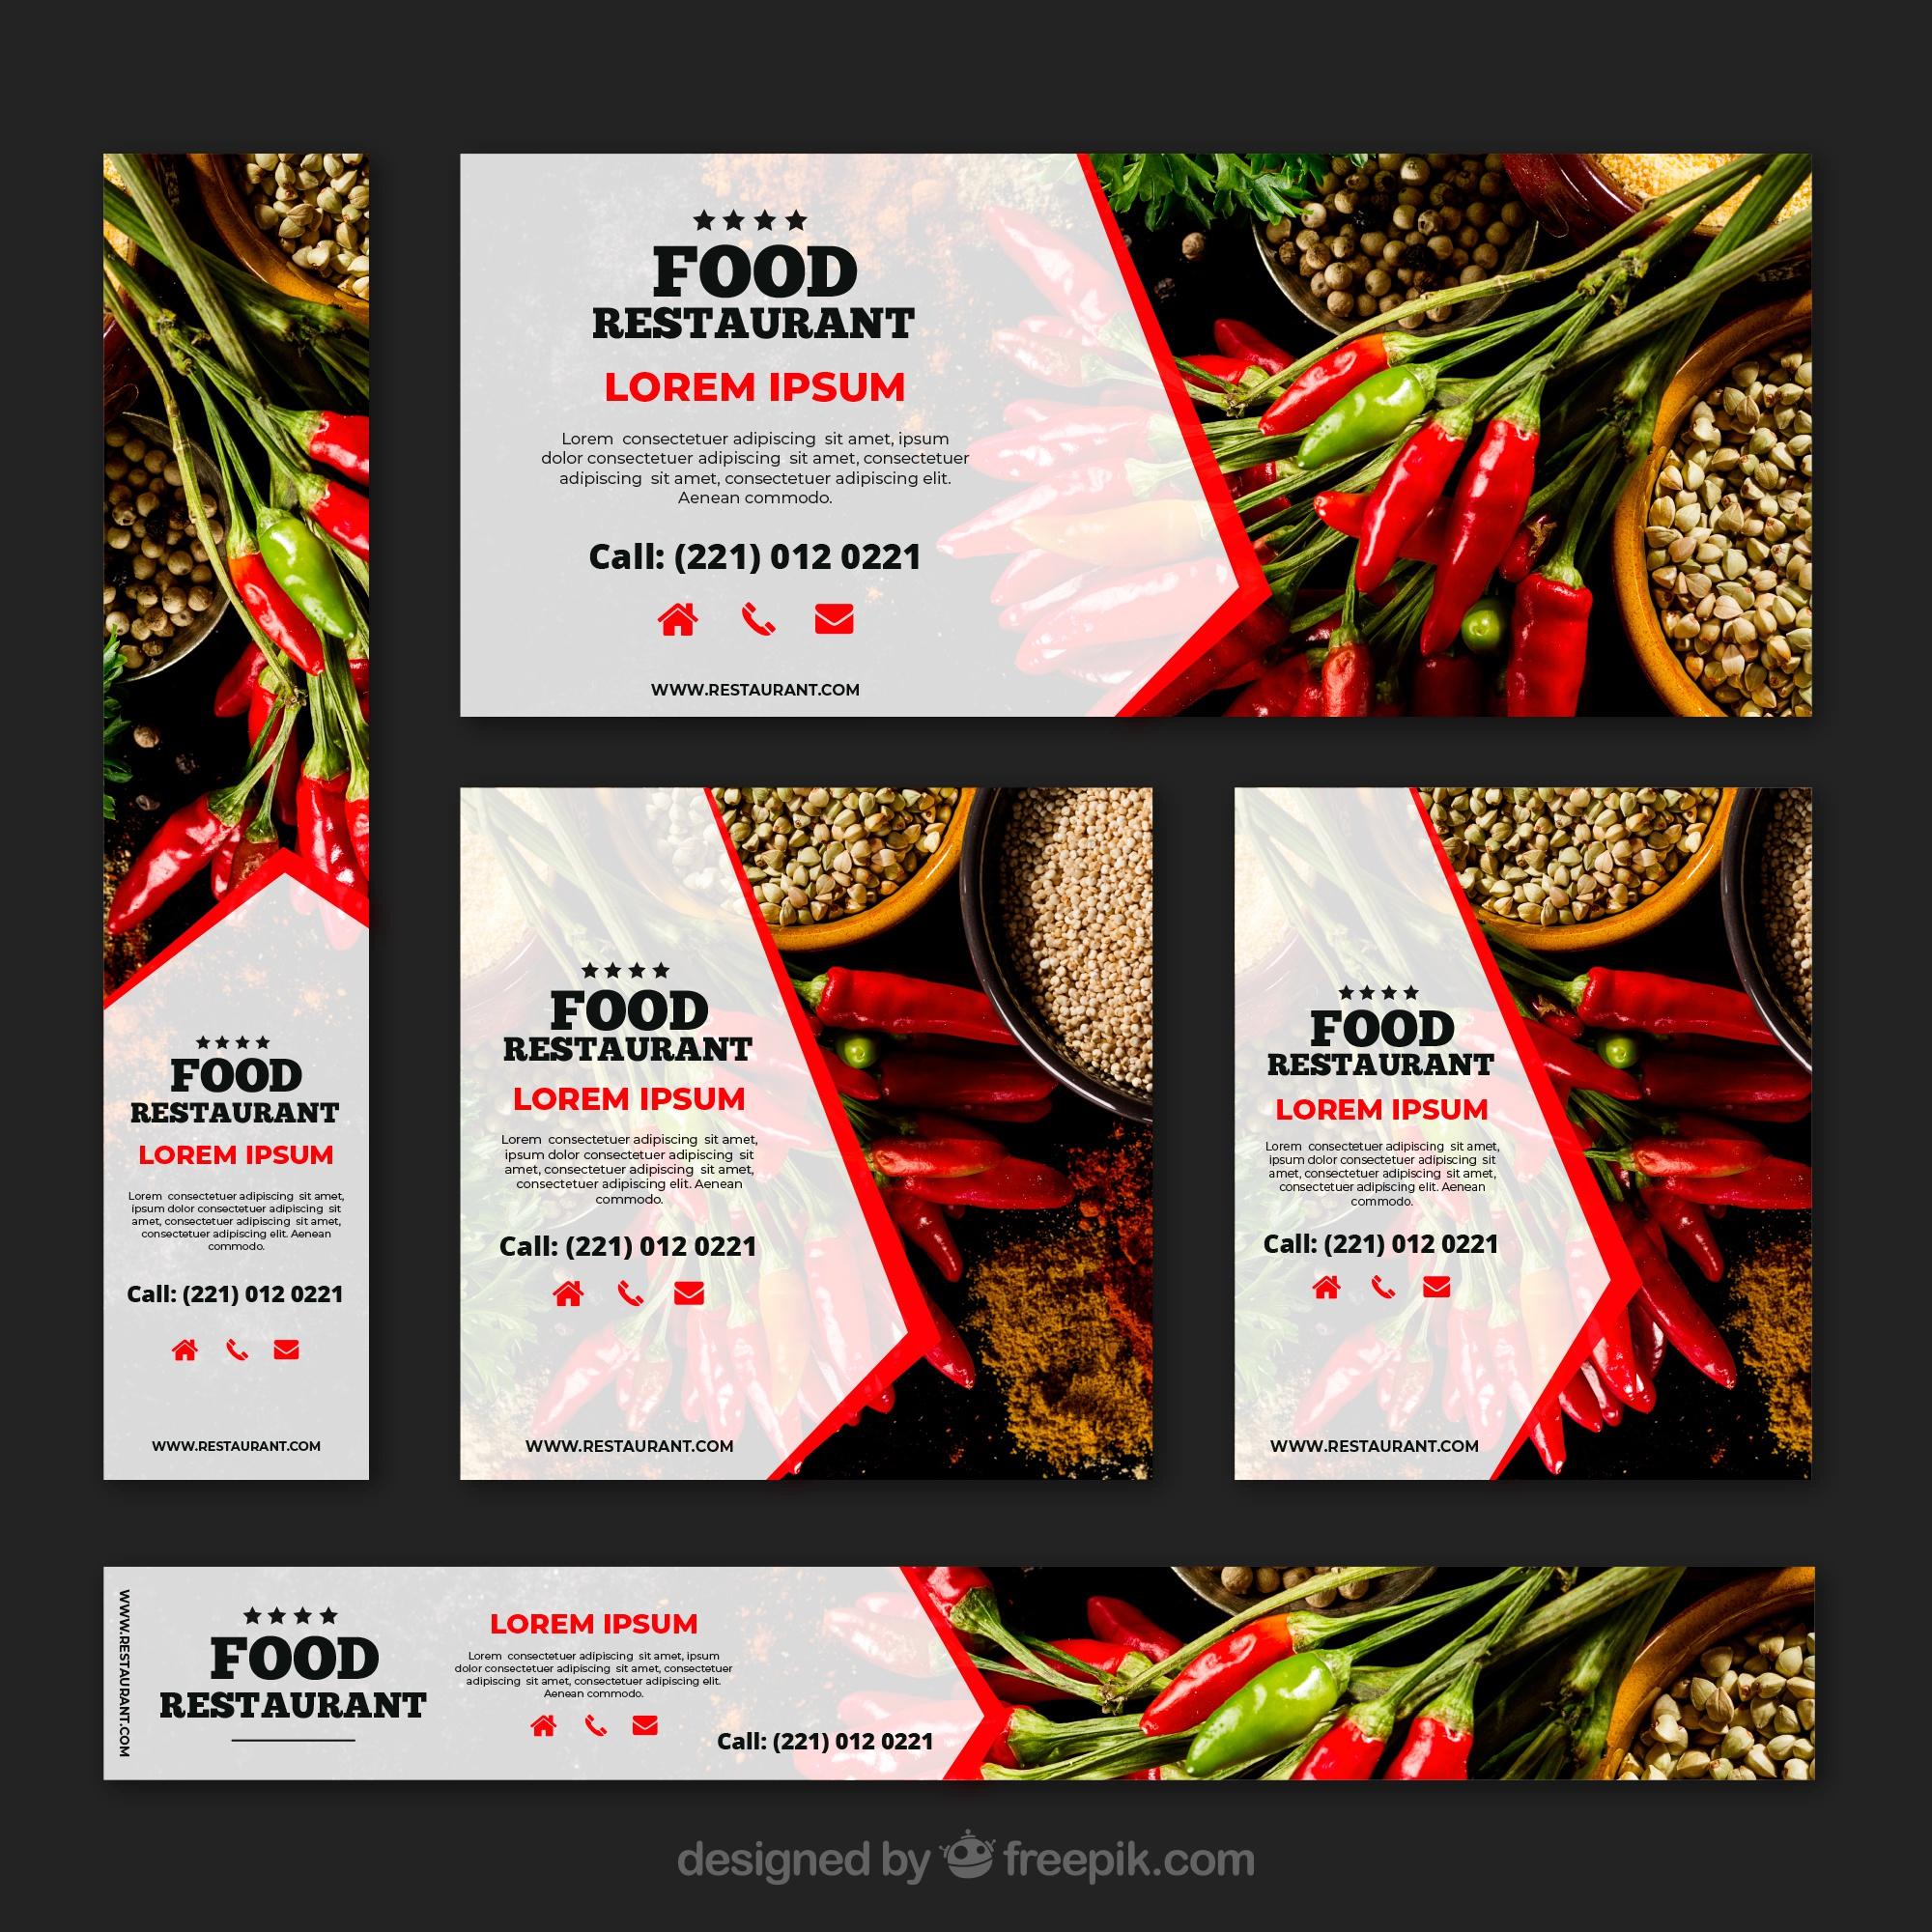 Healthy food restaurant banner collection with photos